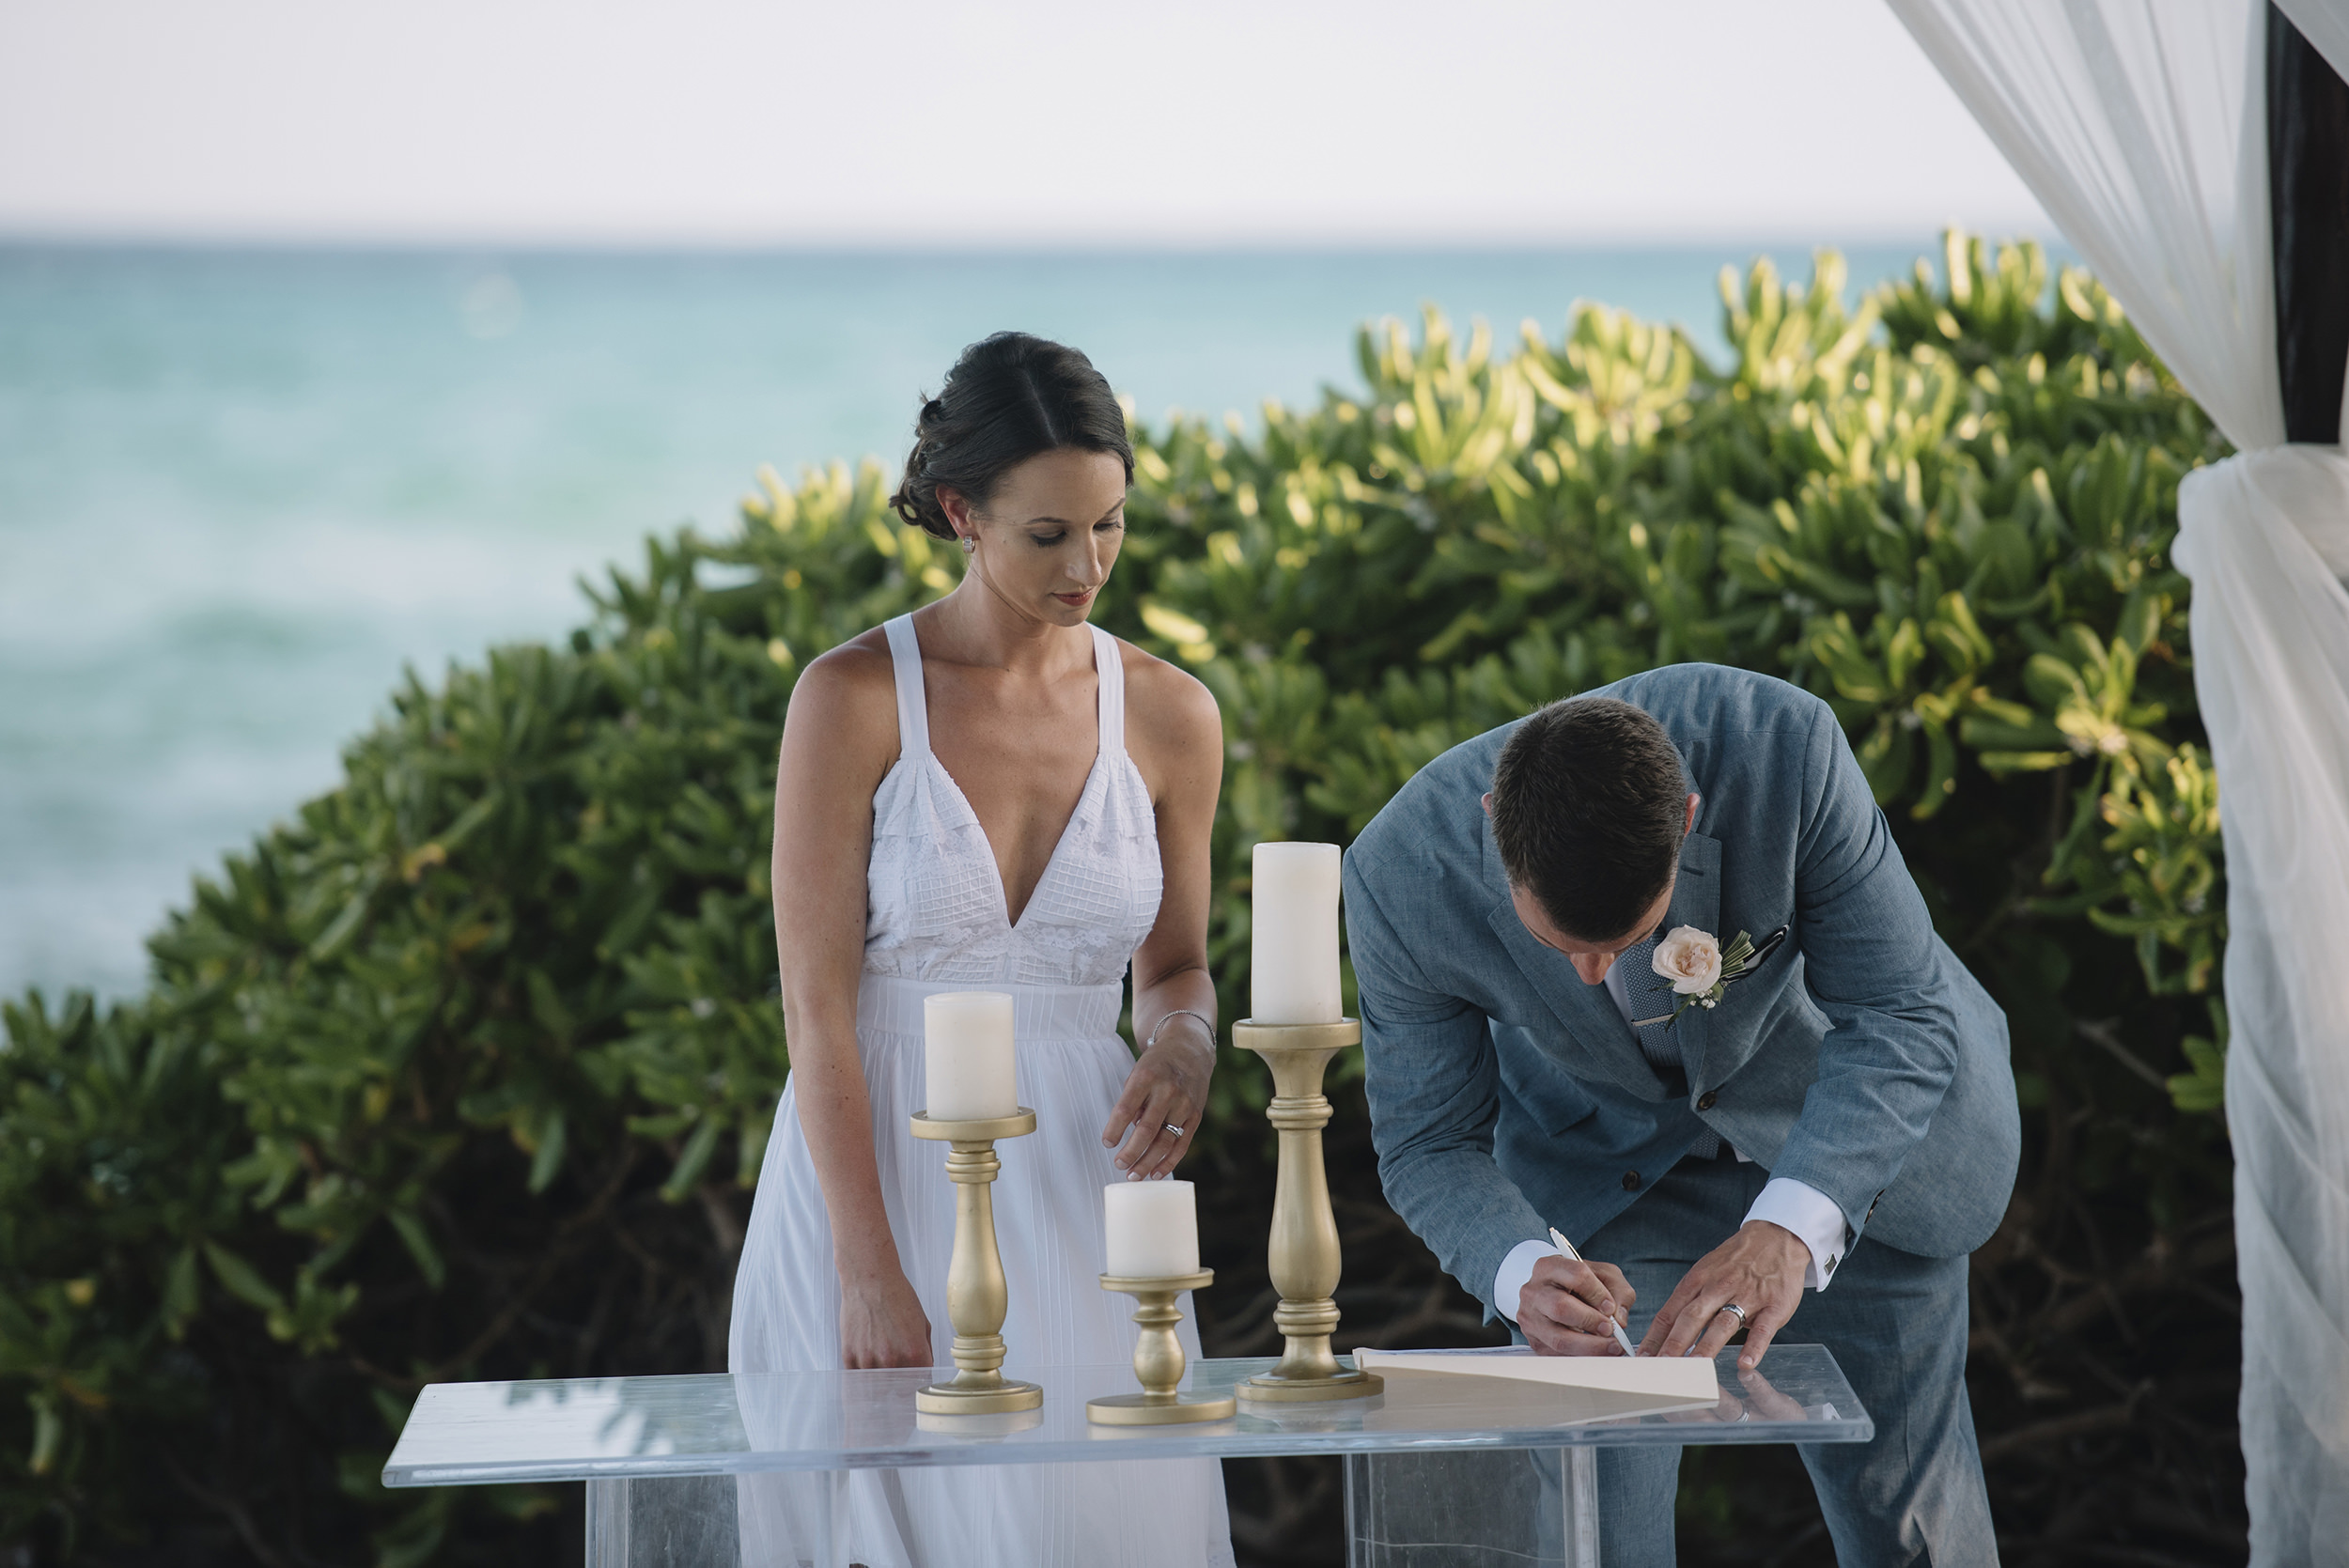 Colby-and-Jess-Intimate-Beach-Wedding-Destination-Cancun-Mexico57.jpg